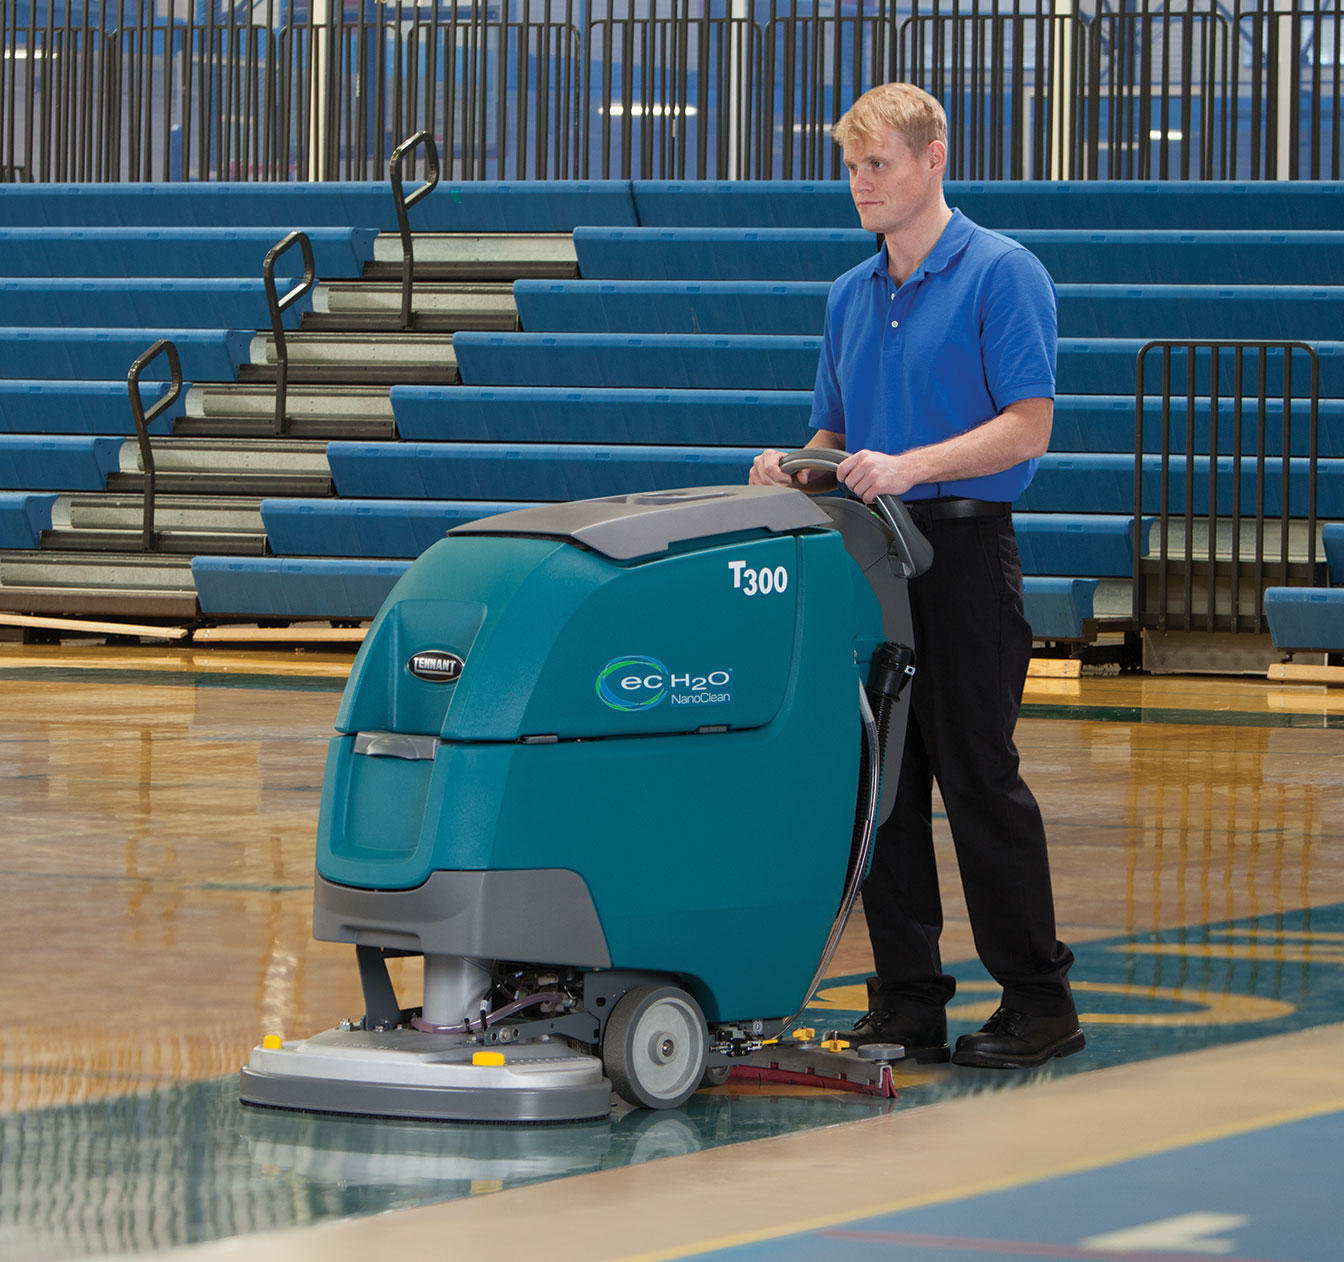 T300 Walk-Behind Scrubber with ec-H2O NanoClean Technology